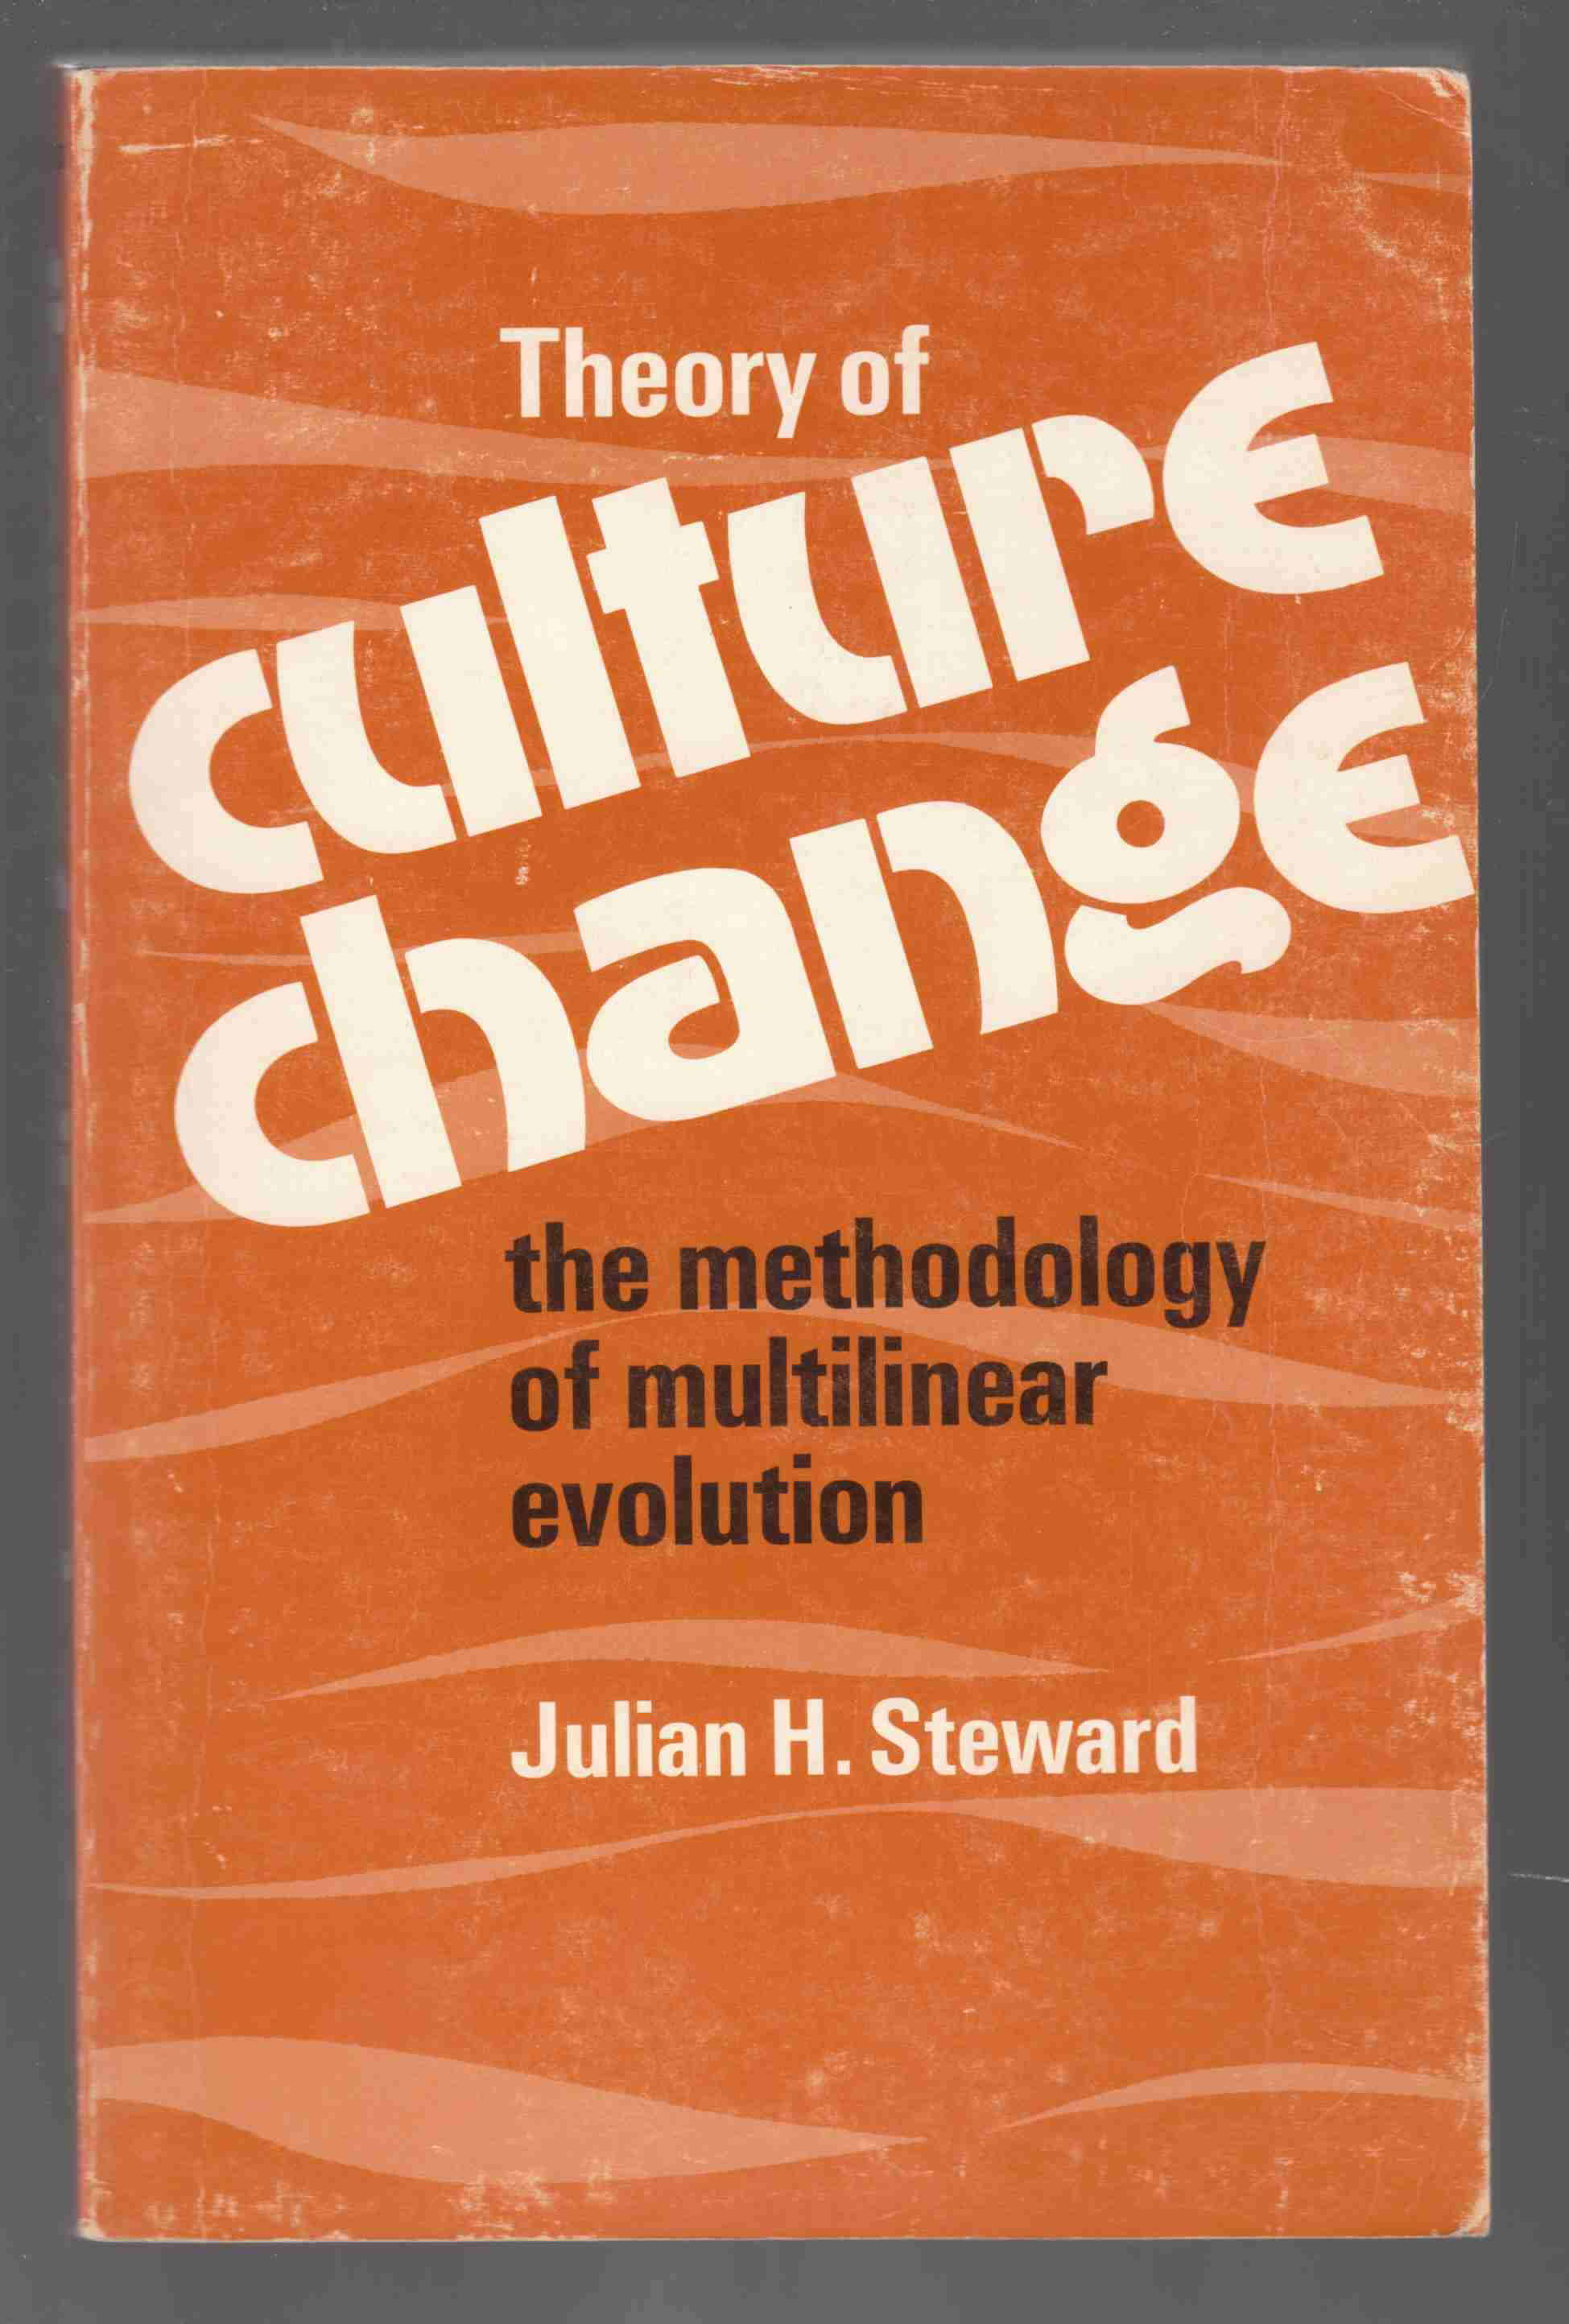 Image for Theory of Culture Change The Methodology of Multilinear Evolution